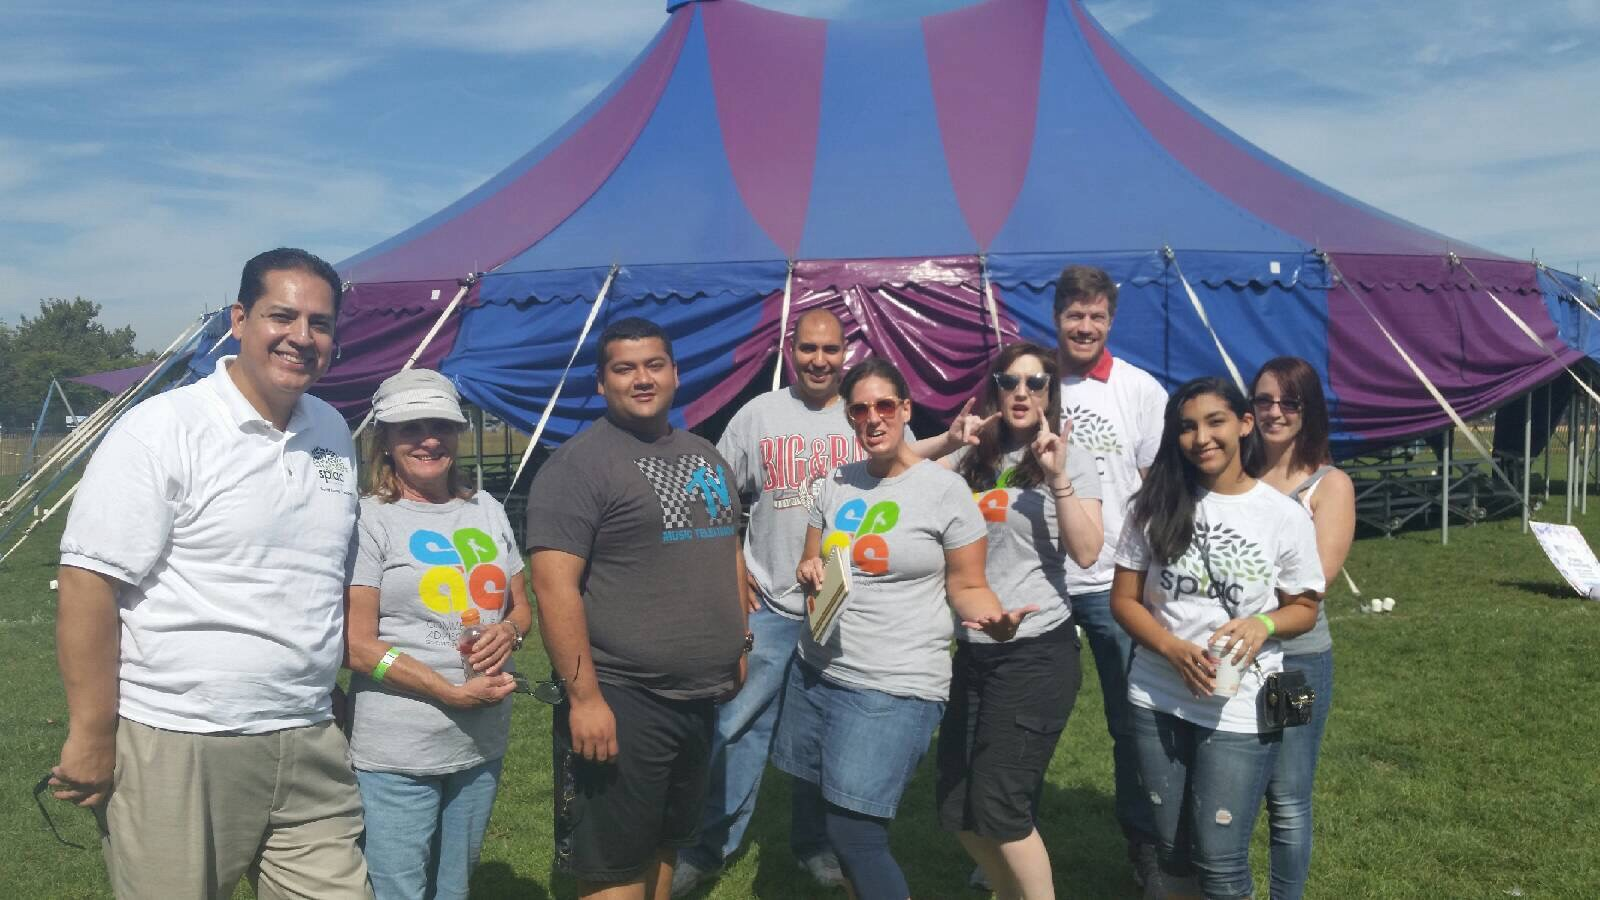 Members of Smith Park and Commercial Park celebrate opening day of the circus at Smith Park.